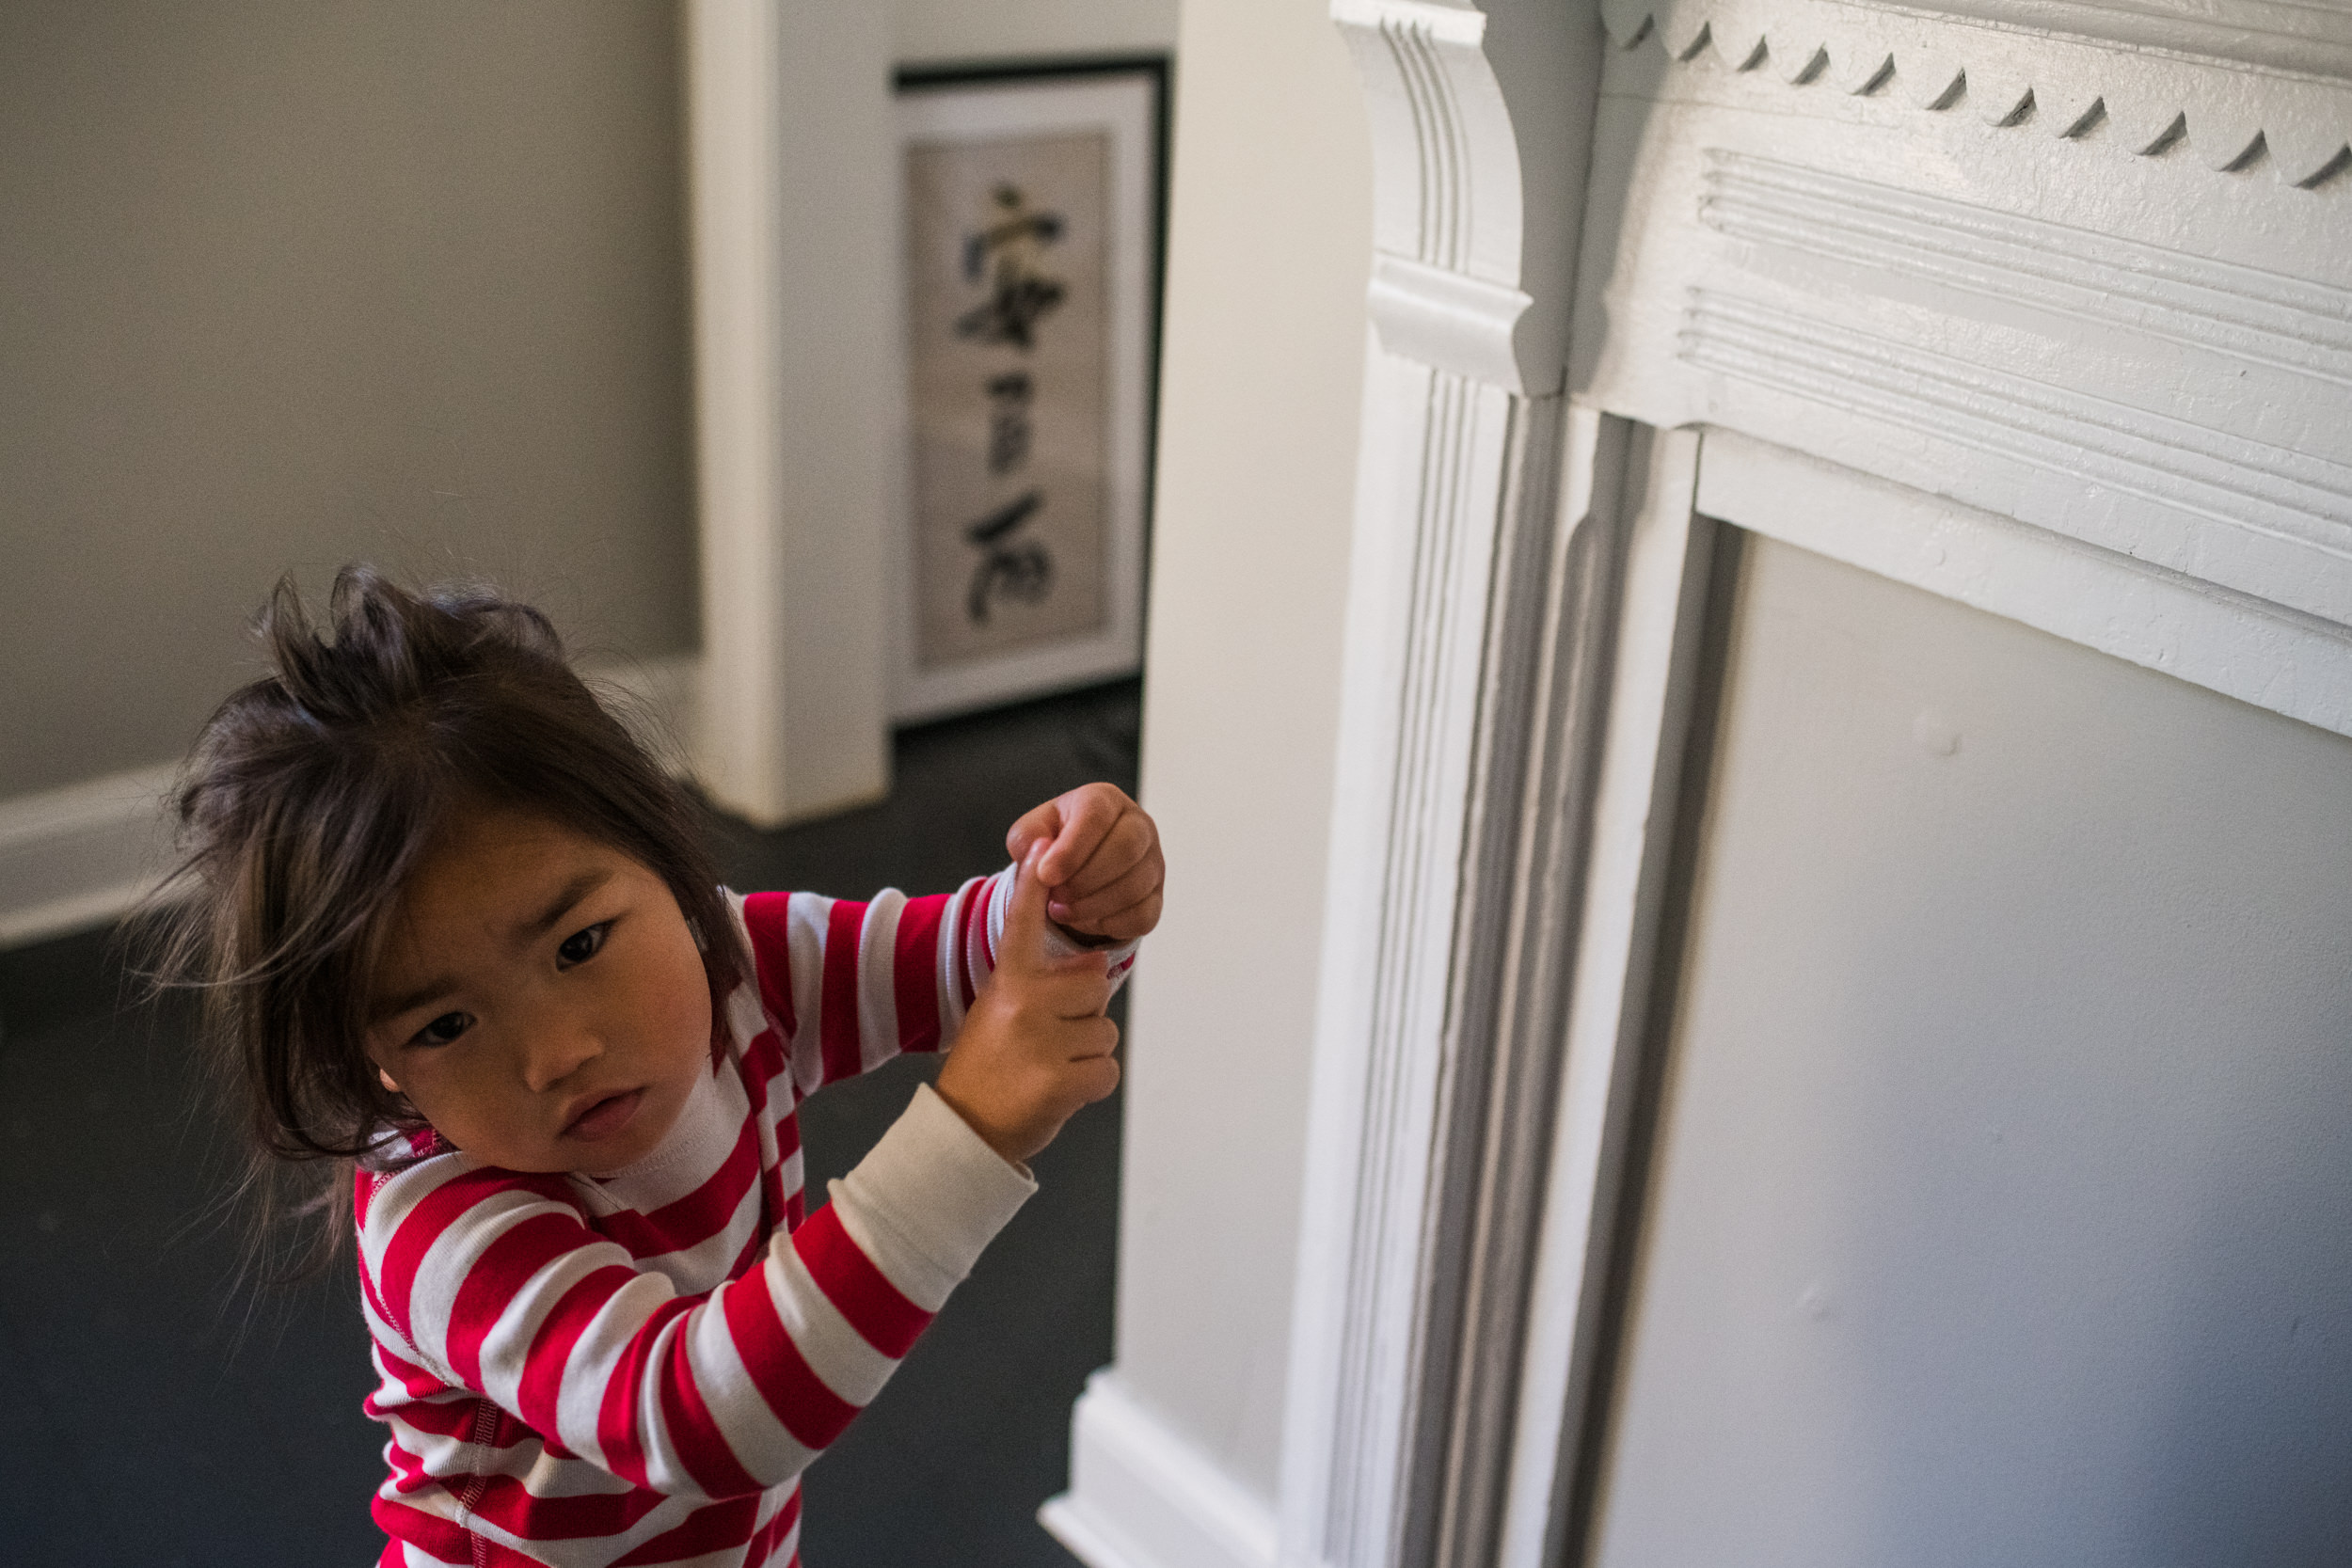 Young girl in the living room with a brush painting of her Chinese name on the wall.